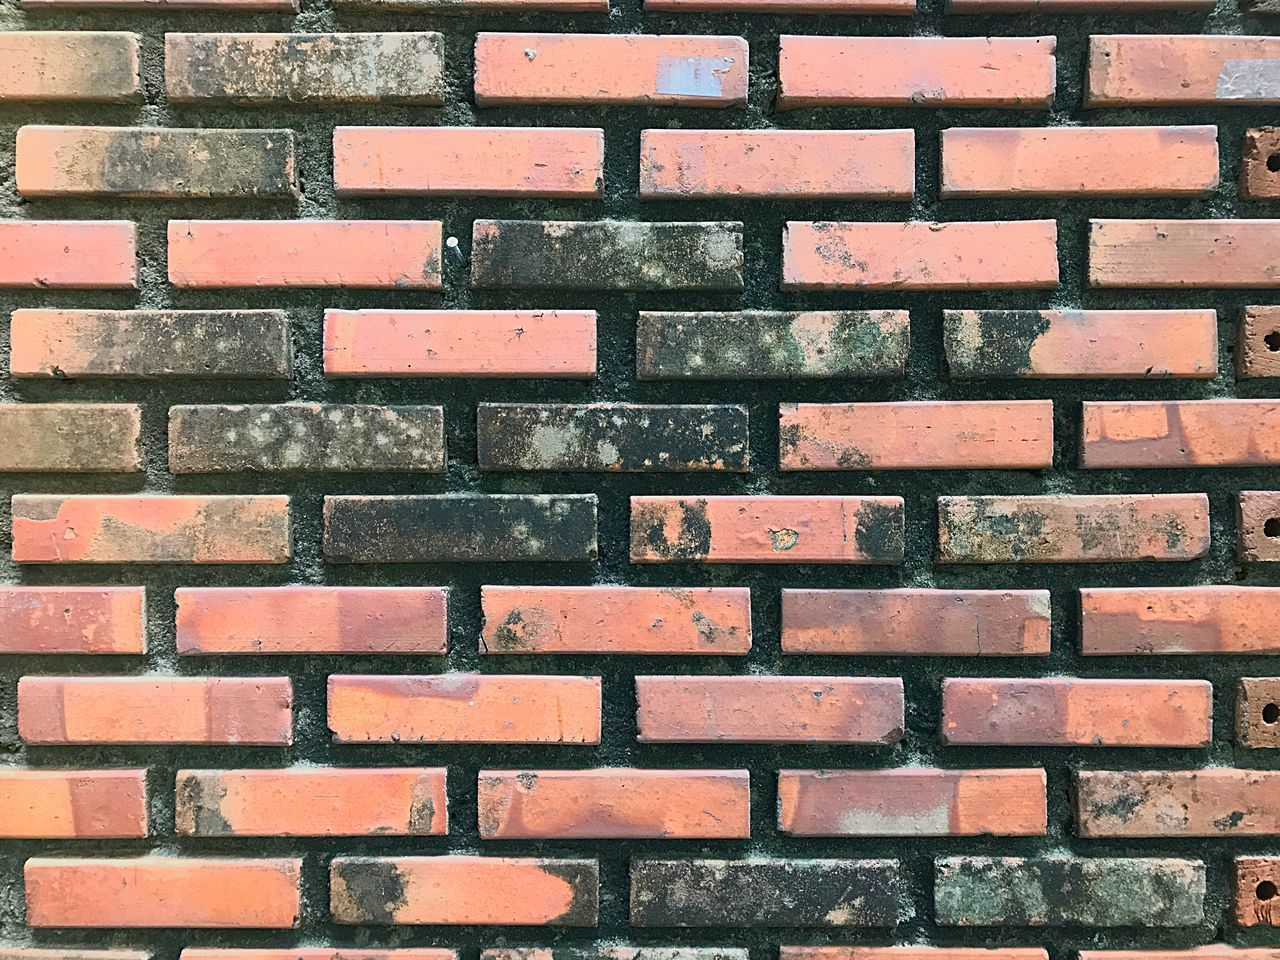 Brick Wall Brick Full Frame Backgrounds No People Architecture Built Structure Day Outdoors Close-up City